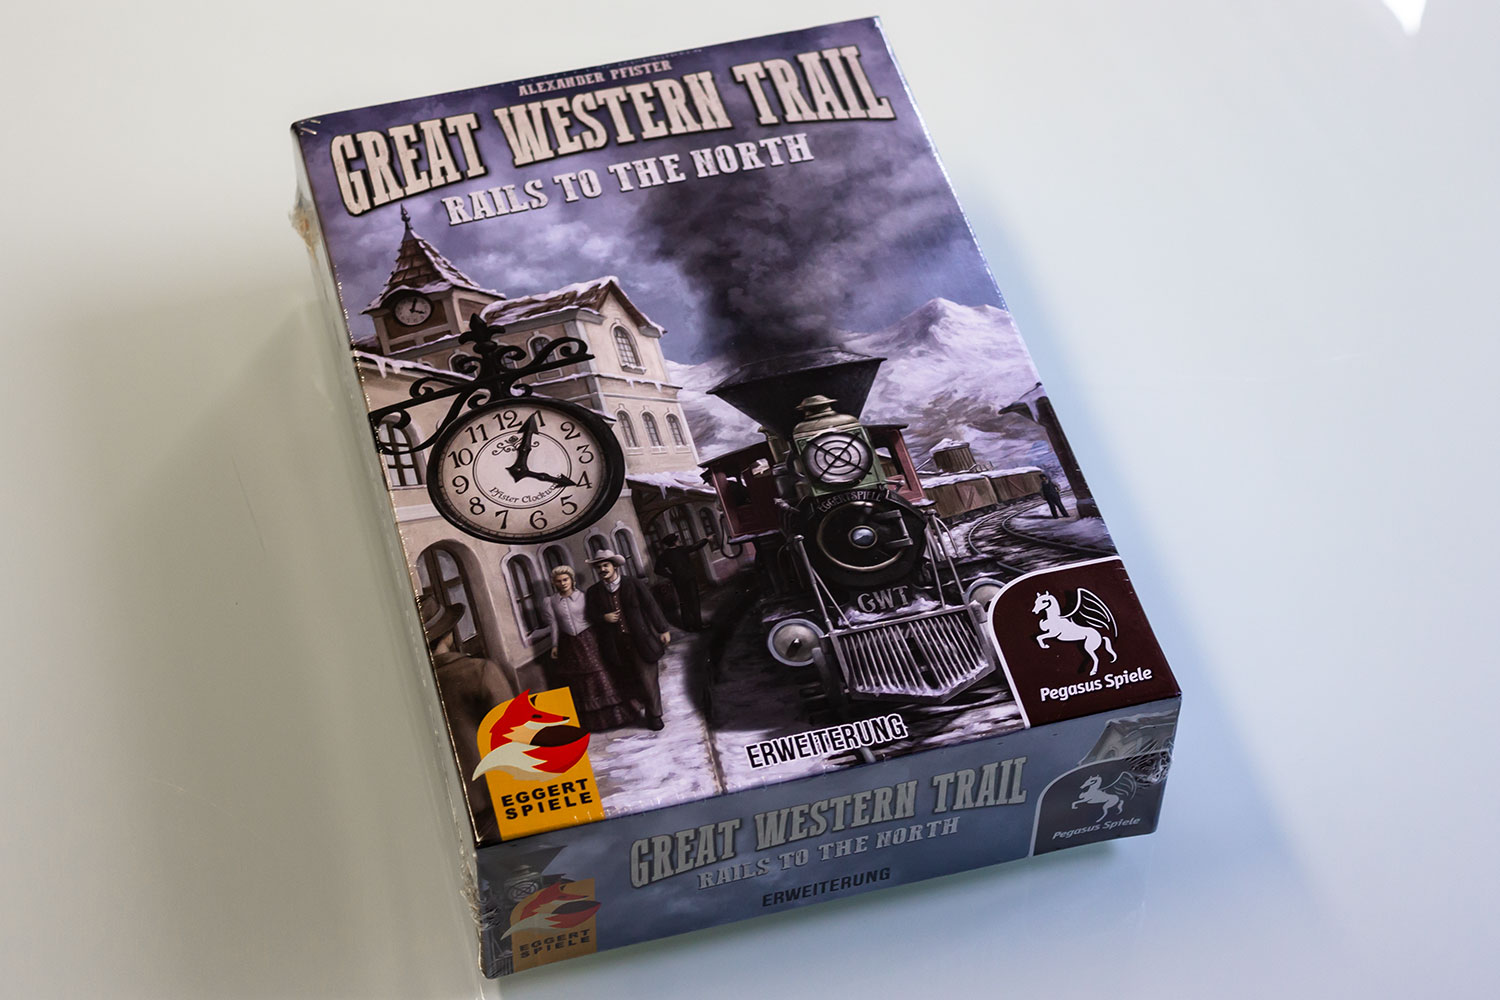 Great Western Trail - Rails to the North jetzt zu kaufen